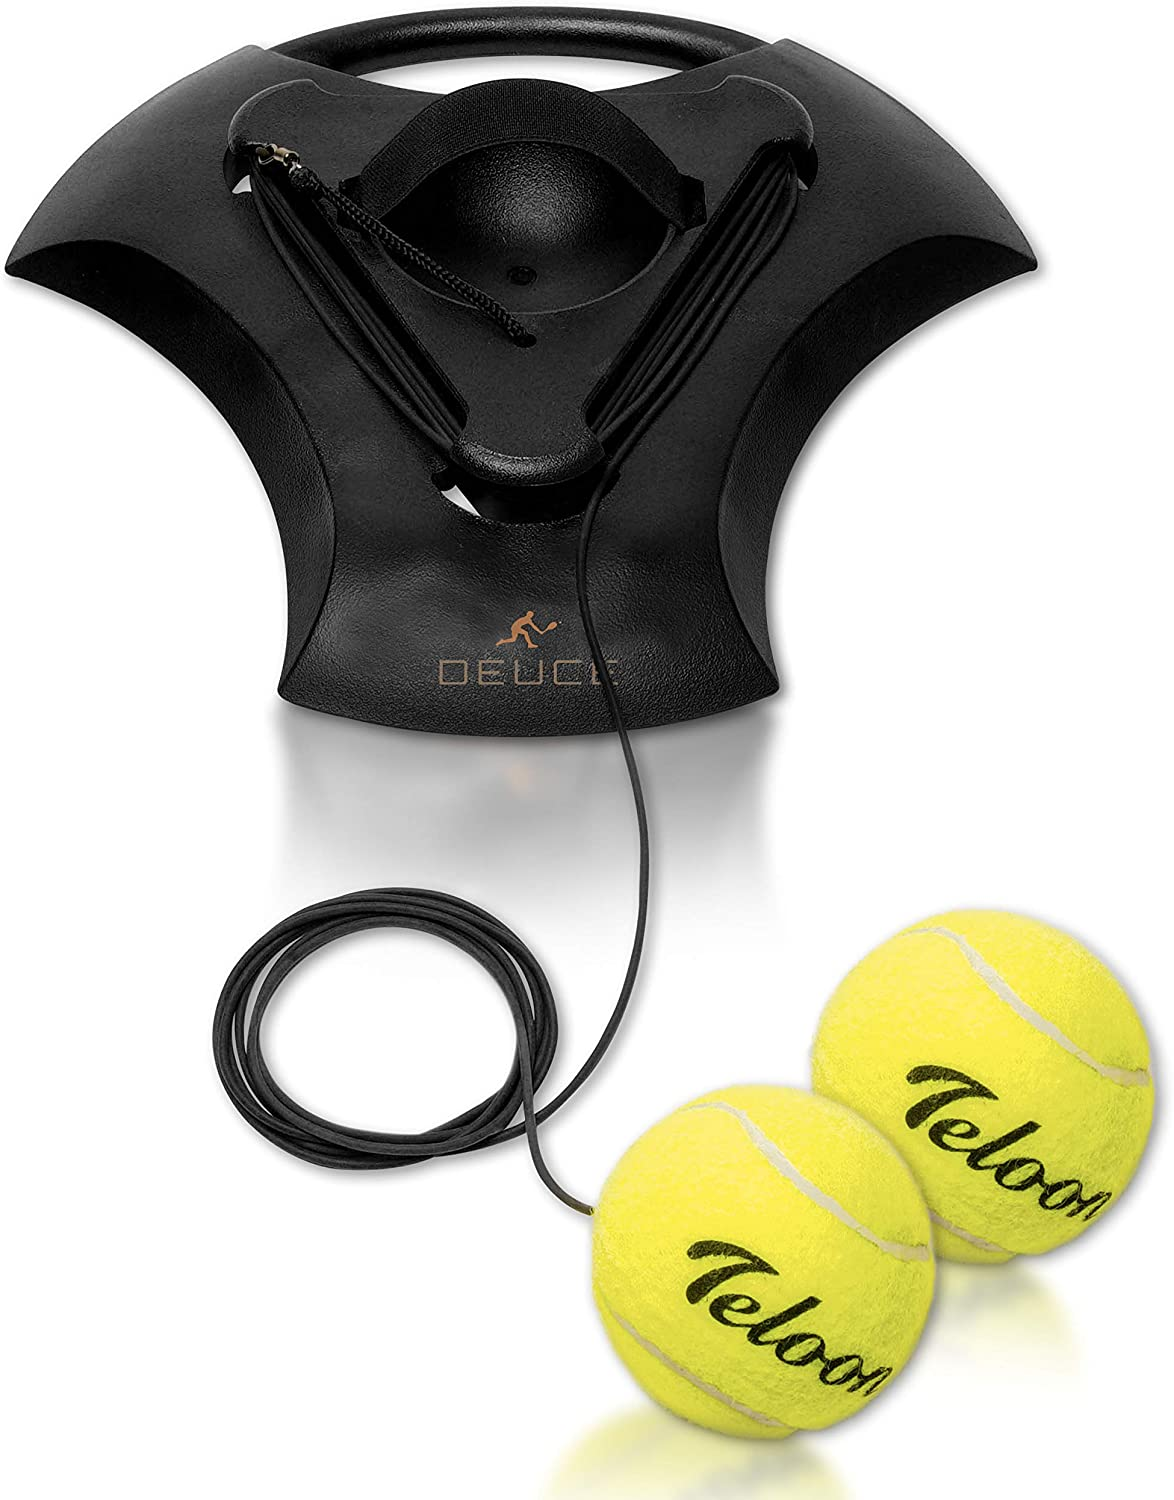 Tennis Training Self Trainer Pro Tennis Equipment for Tennis Sports Training – Includes 2 Balls, 2 Elastic Cord and Weighted Base - Enhance Cardio, Stamina, Quickness and More - Patent Pending